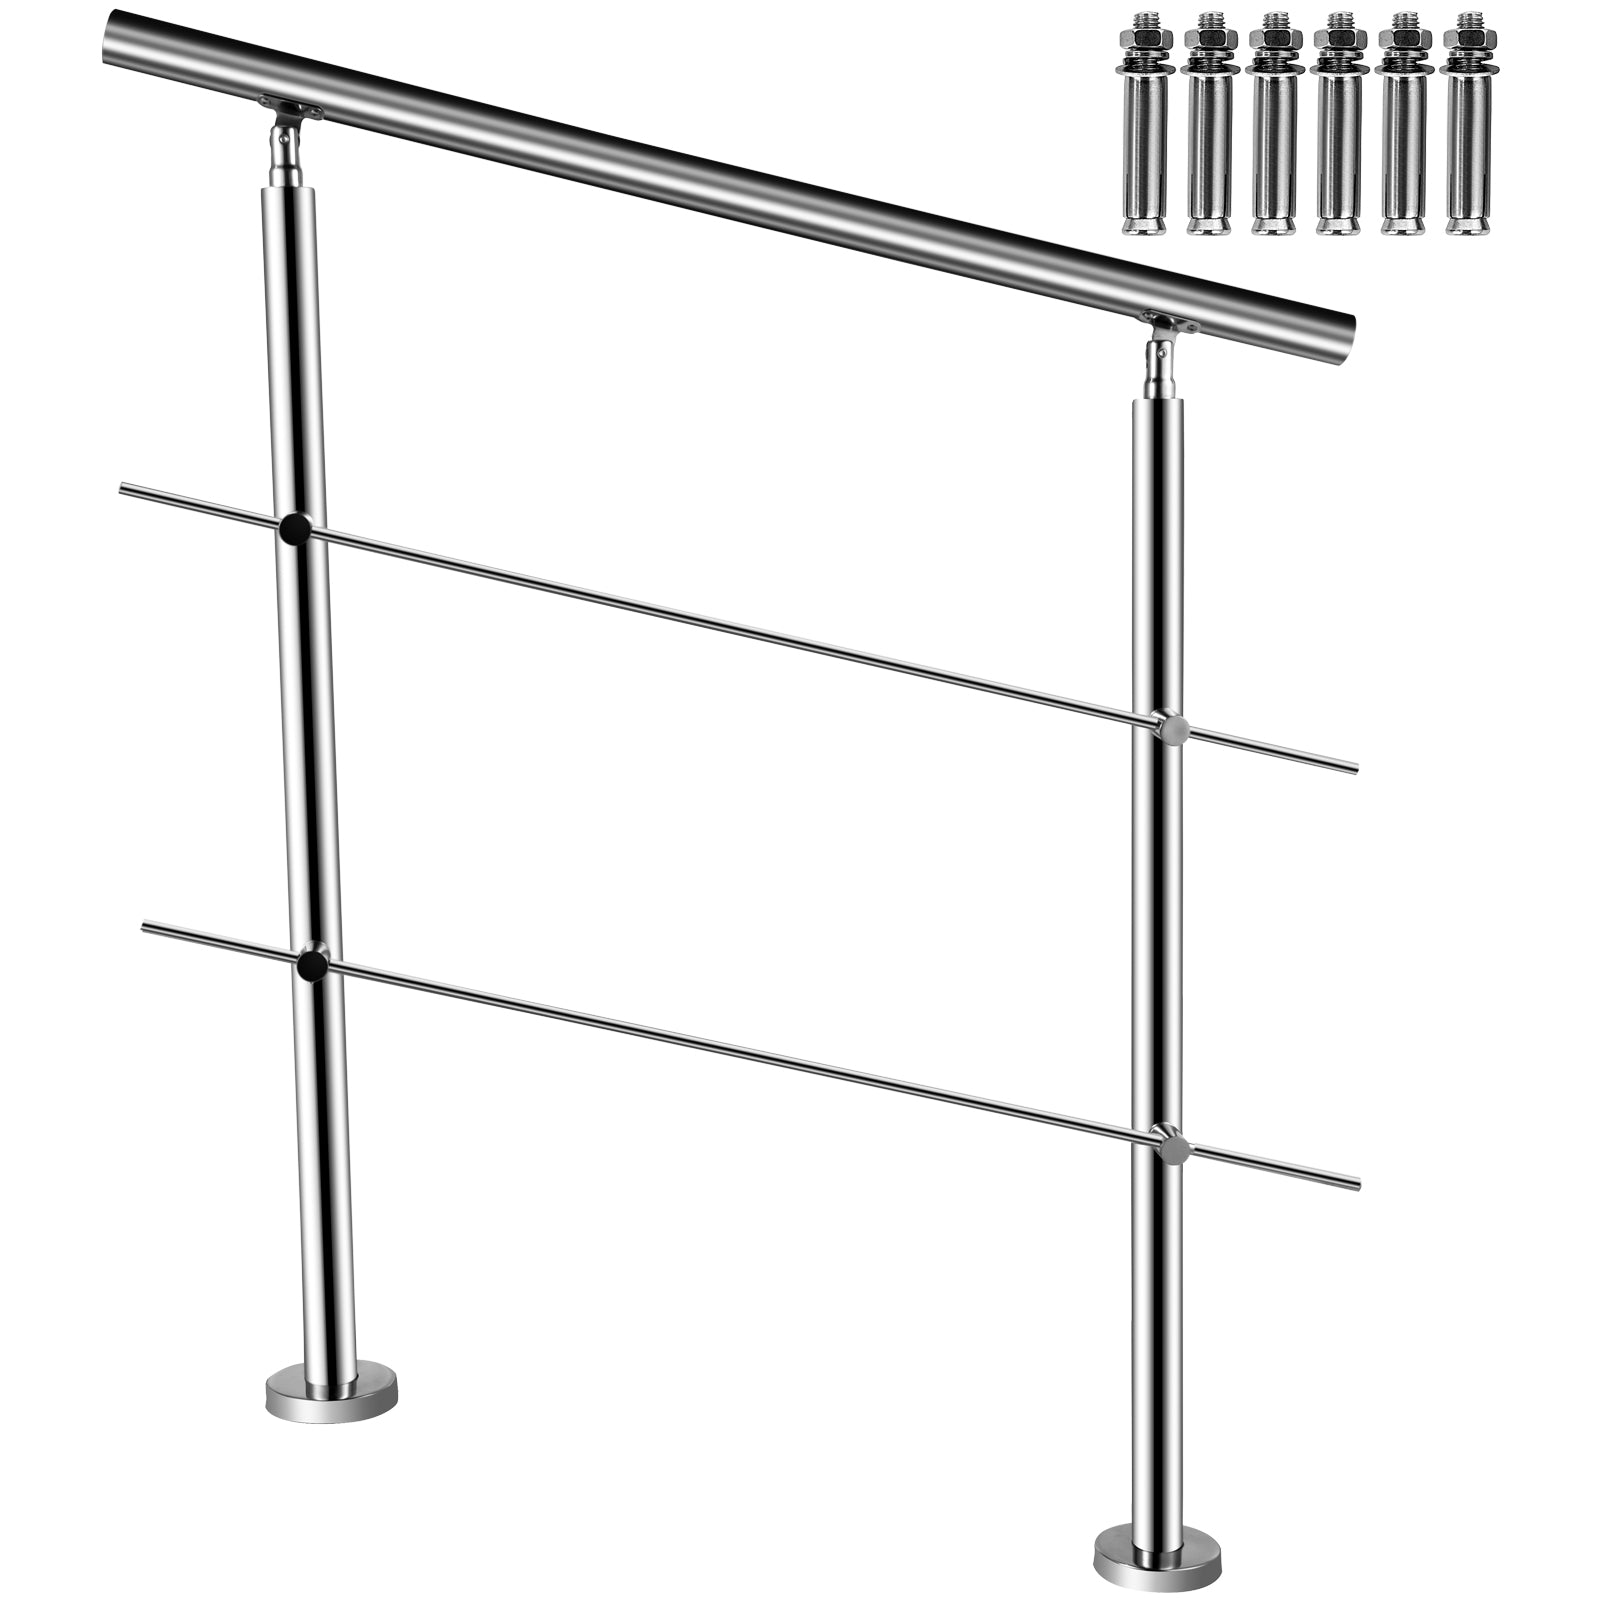 Vevor Stainless Stair Handrail Hand Rails For Steps 2 Cross Bars, Indoor Outdoor